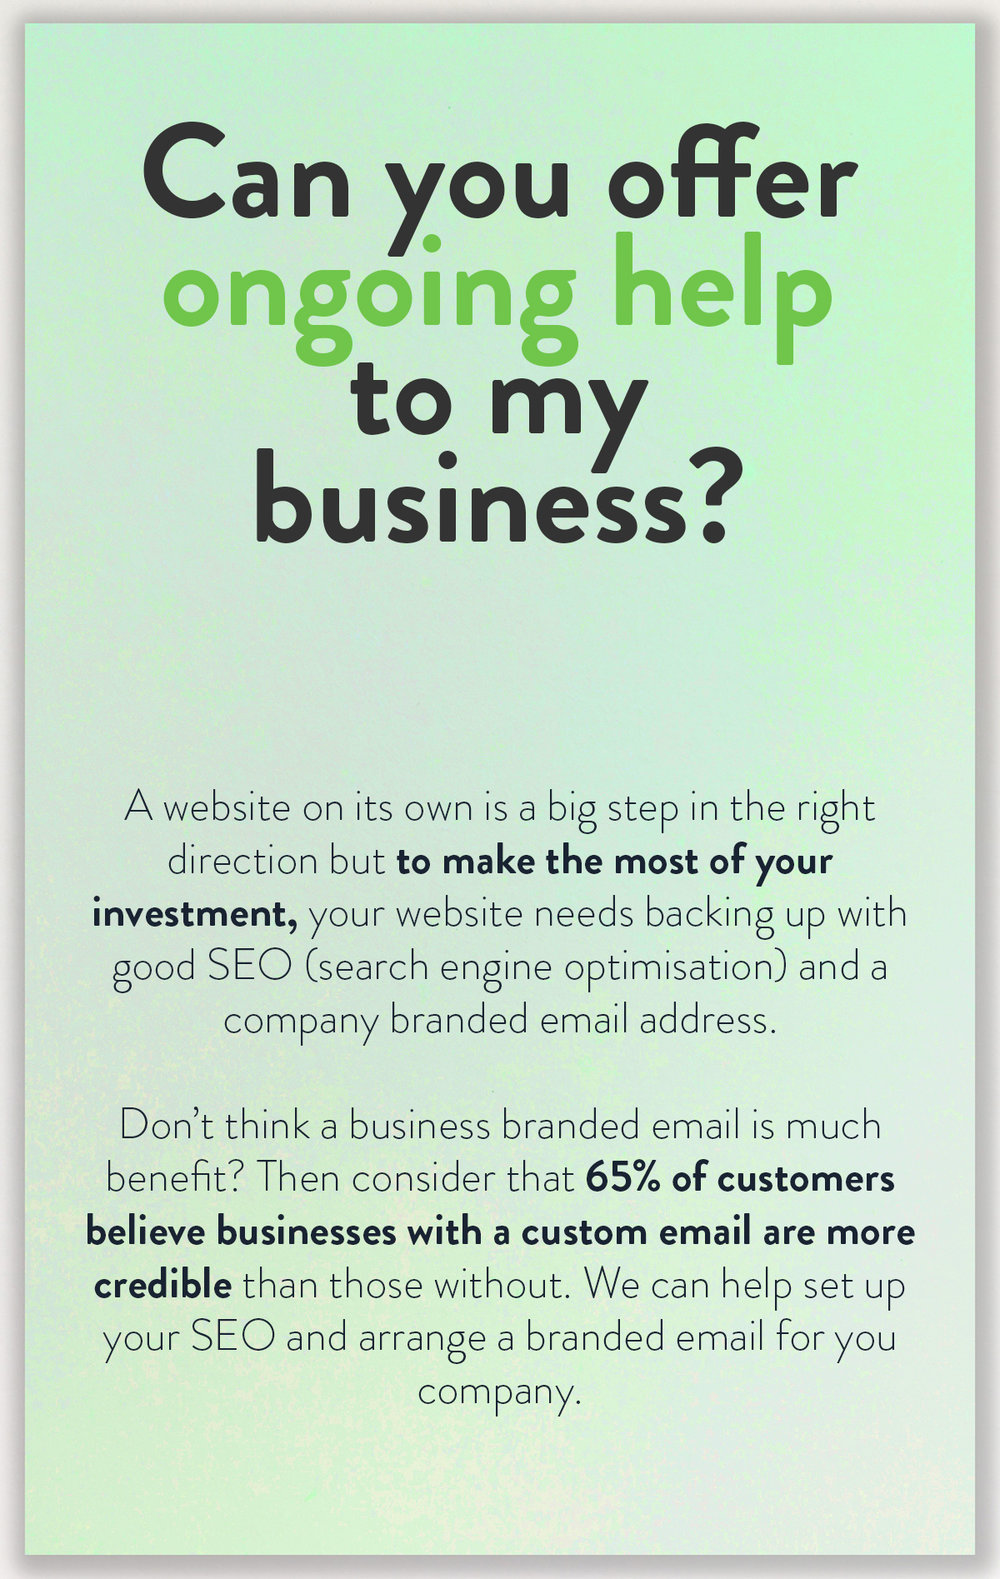 website-seo-and-branded-email.jpg